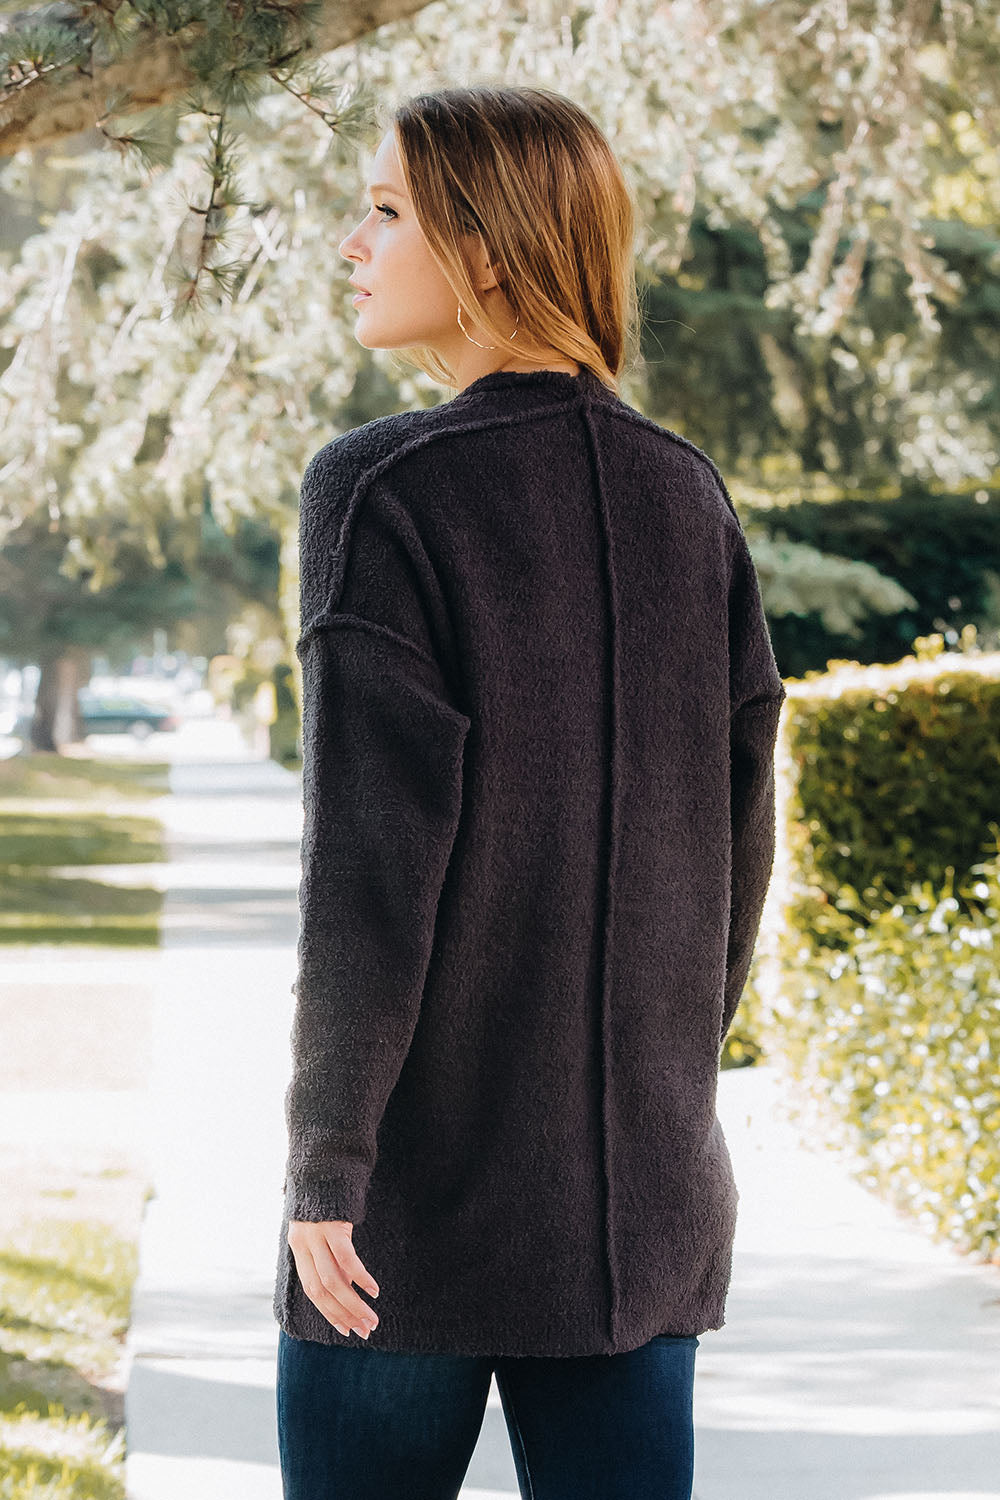 Soft Knit Reverse Seam Comfy Cardigan - Charcoal